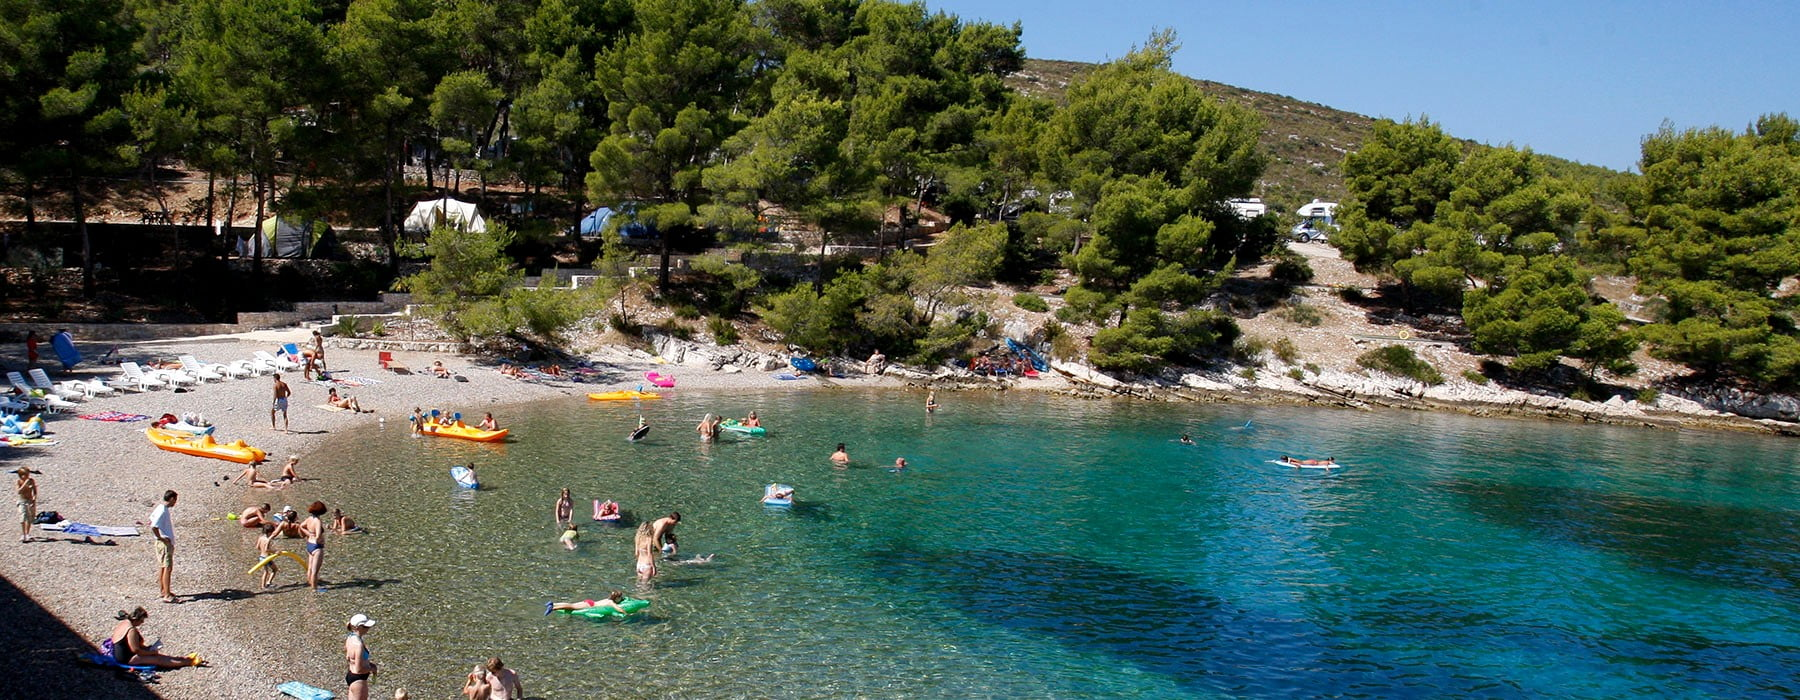 Camping on Hvar Camp Vira